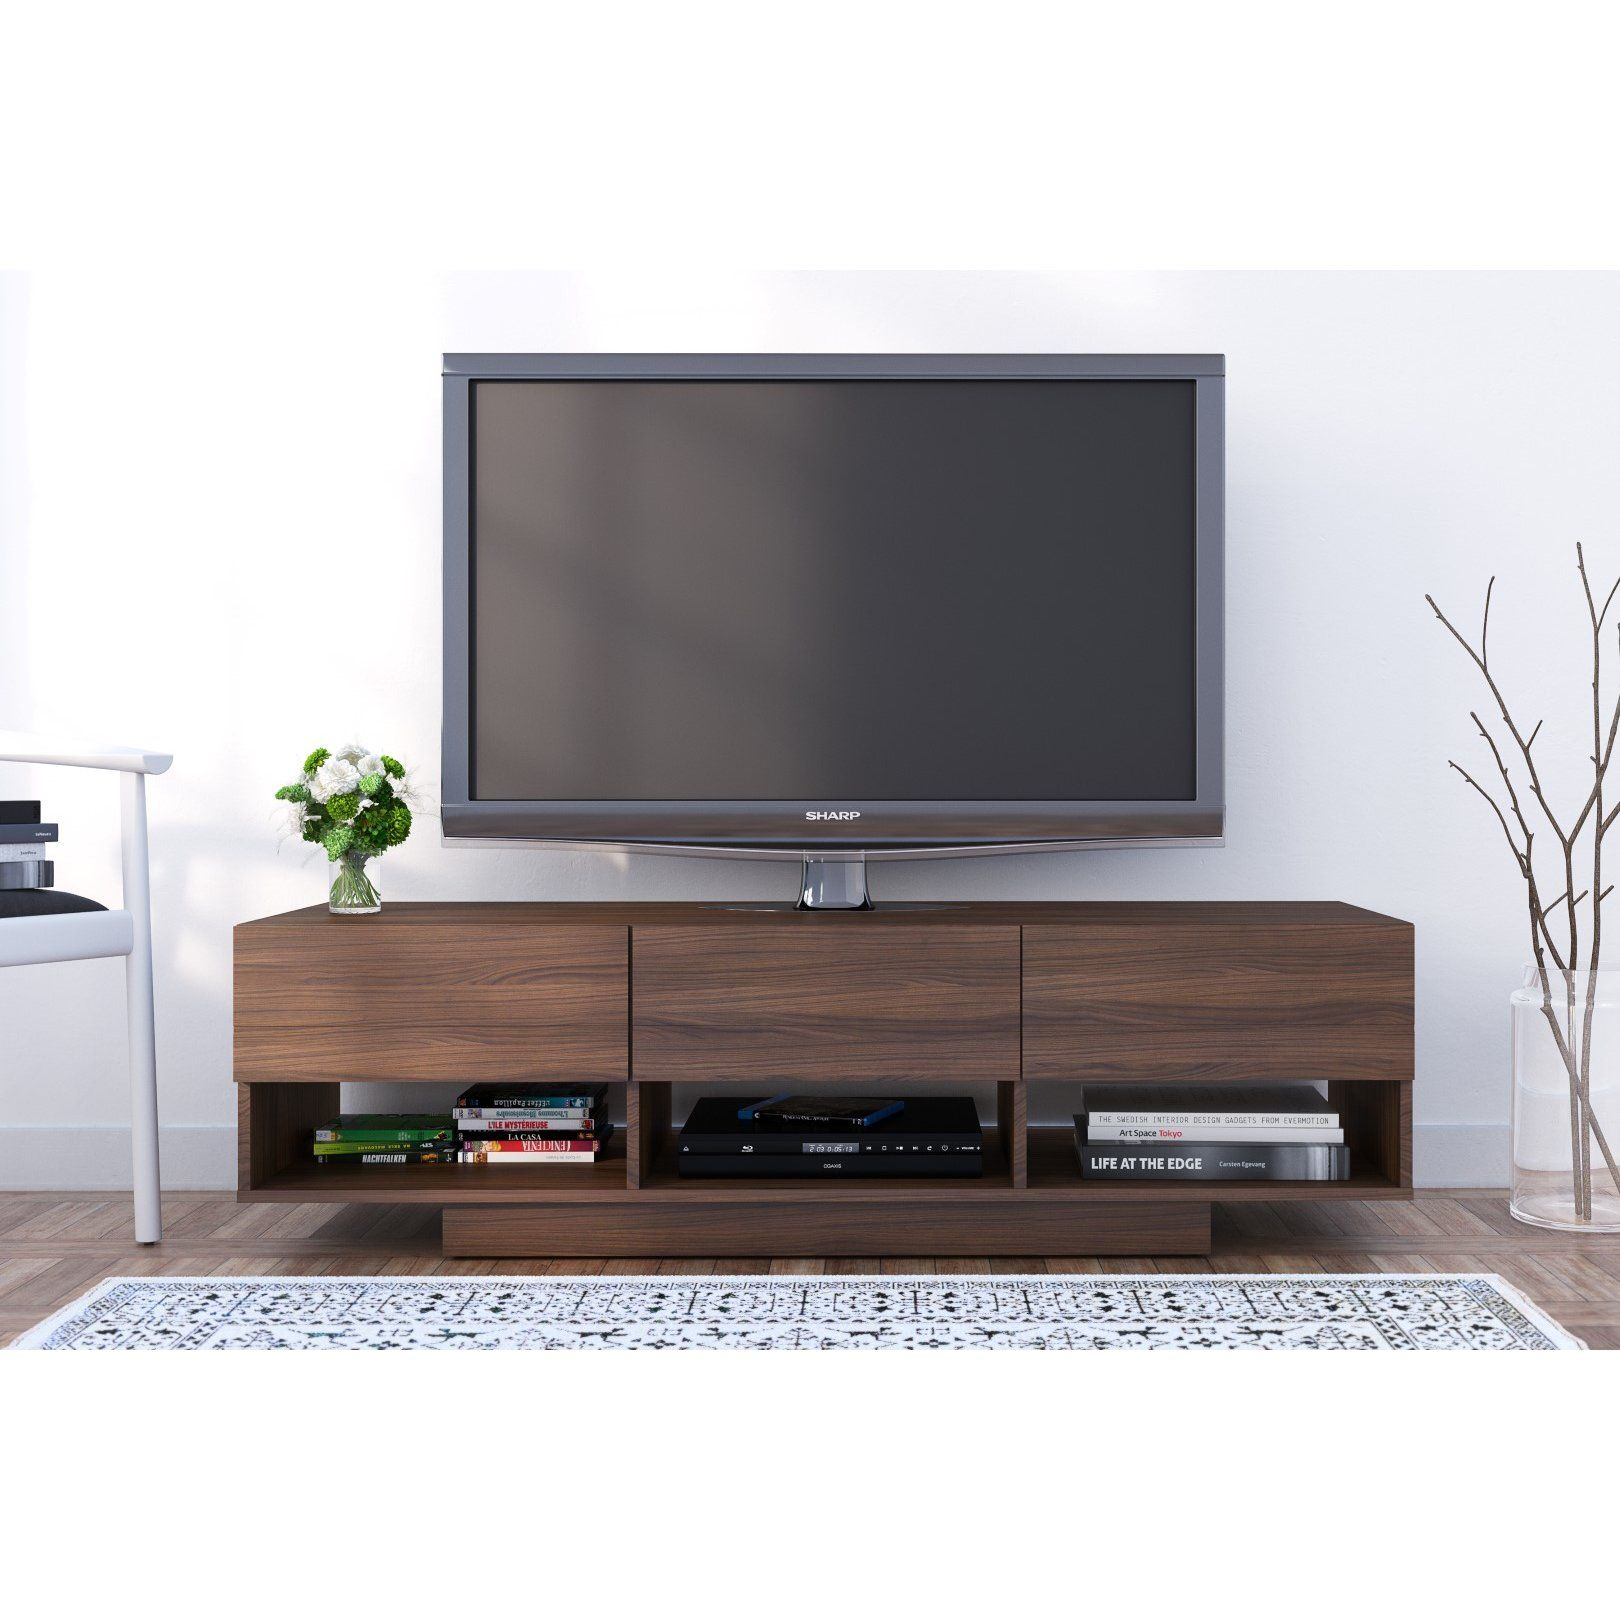 Main Image Zoomed Corner Fireplace Tv Stand Tv Stand 60 Tv Stand